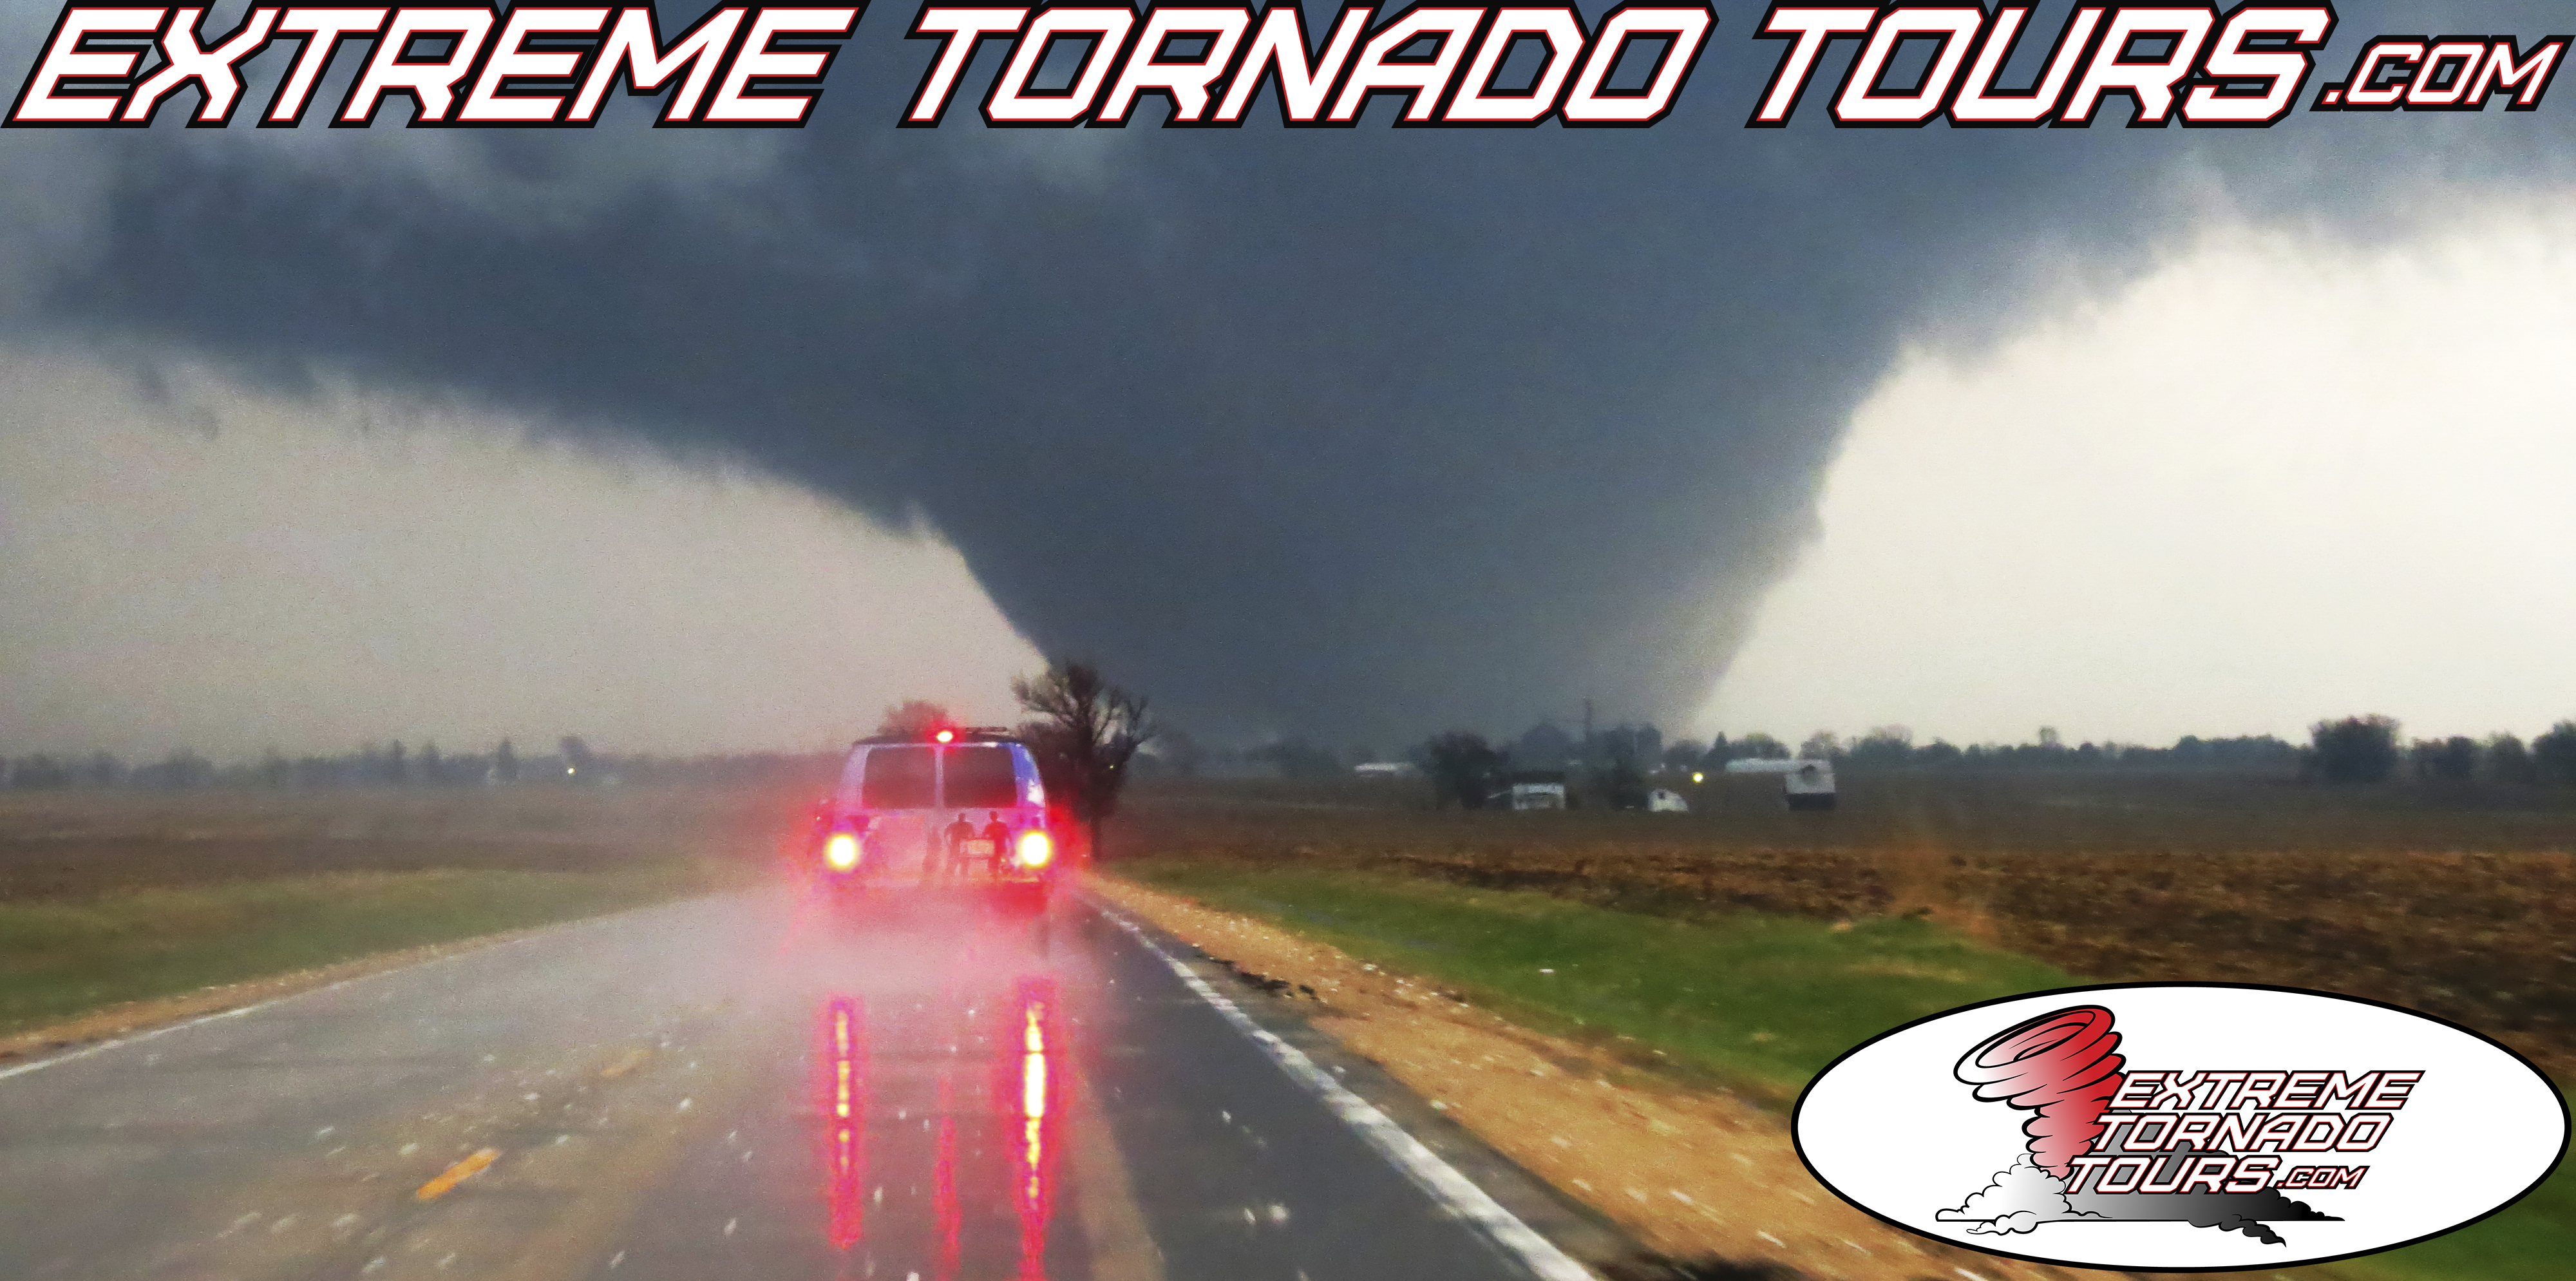 Storm Chase Tour Review